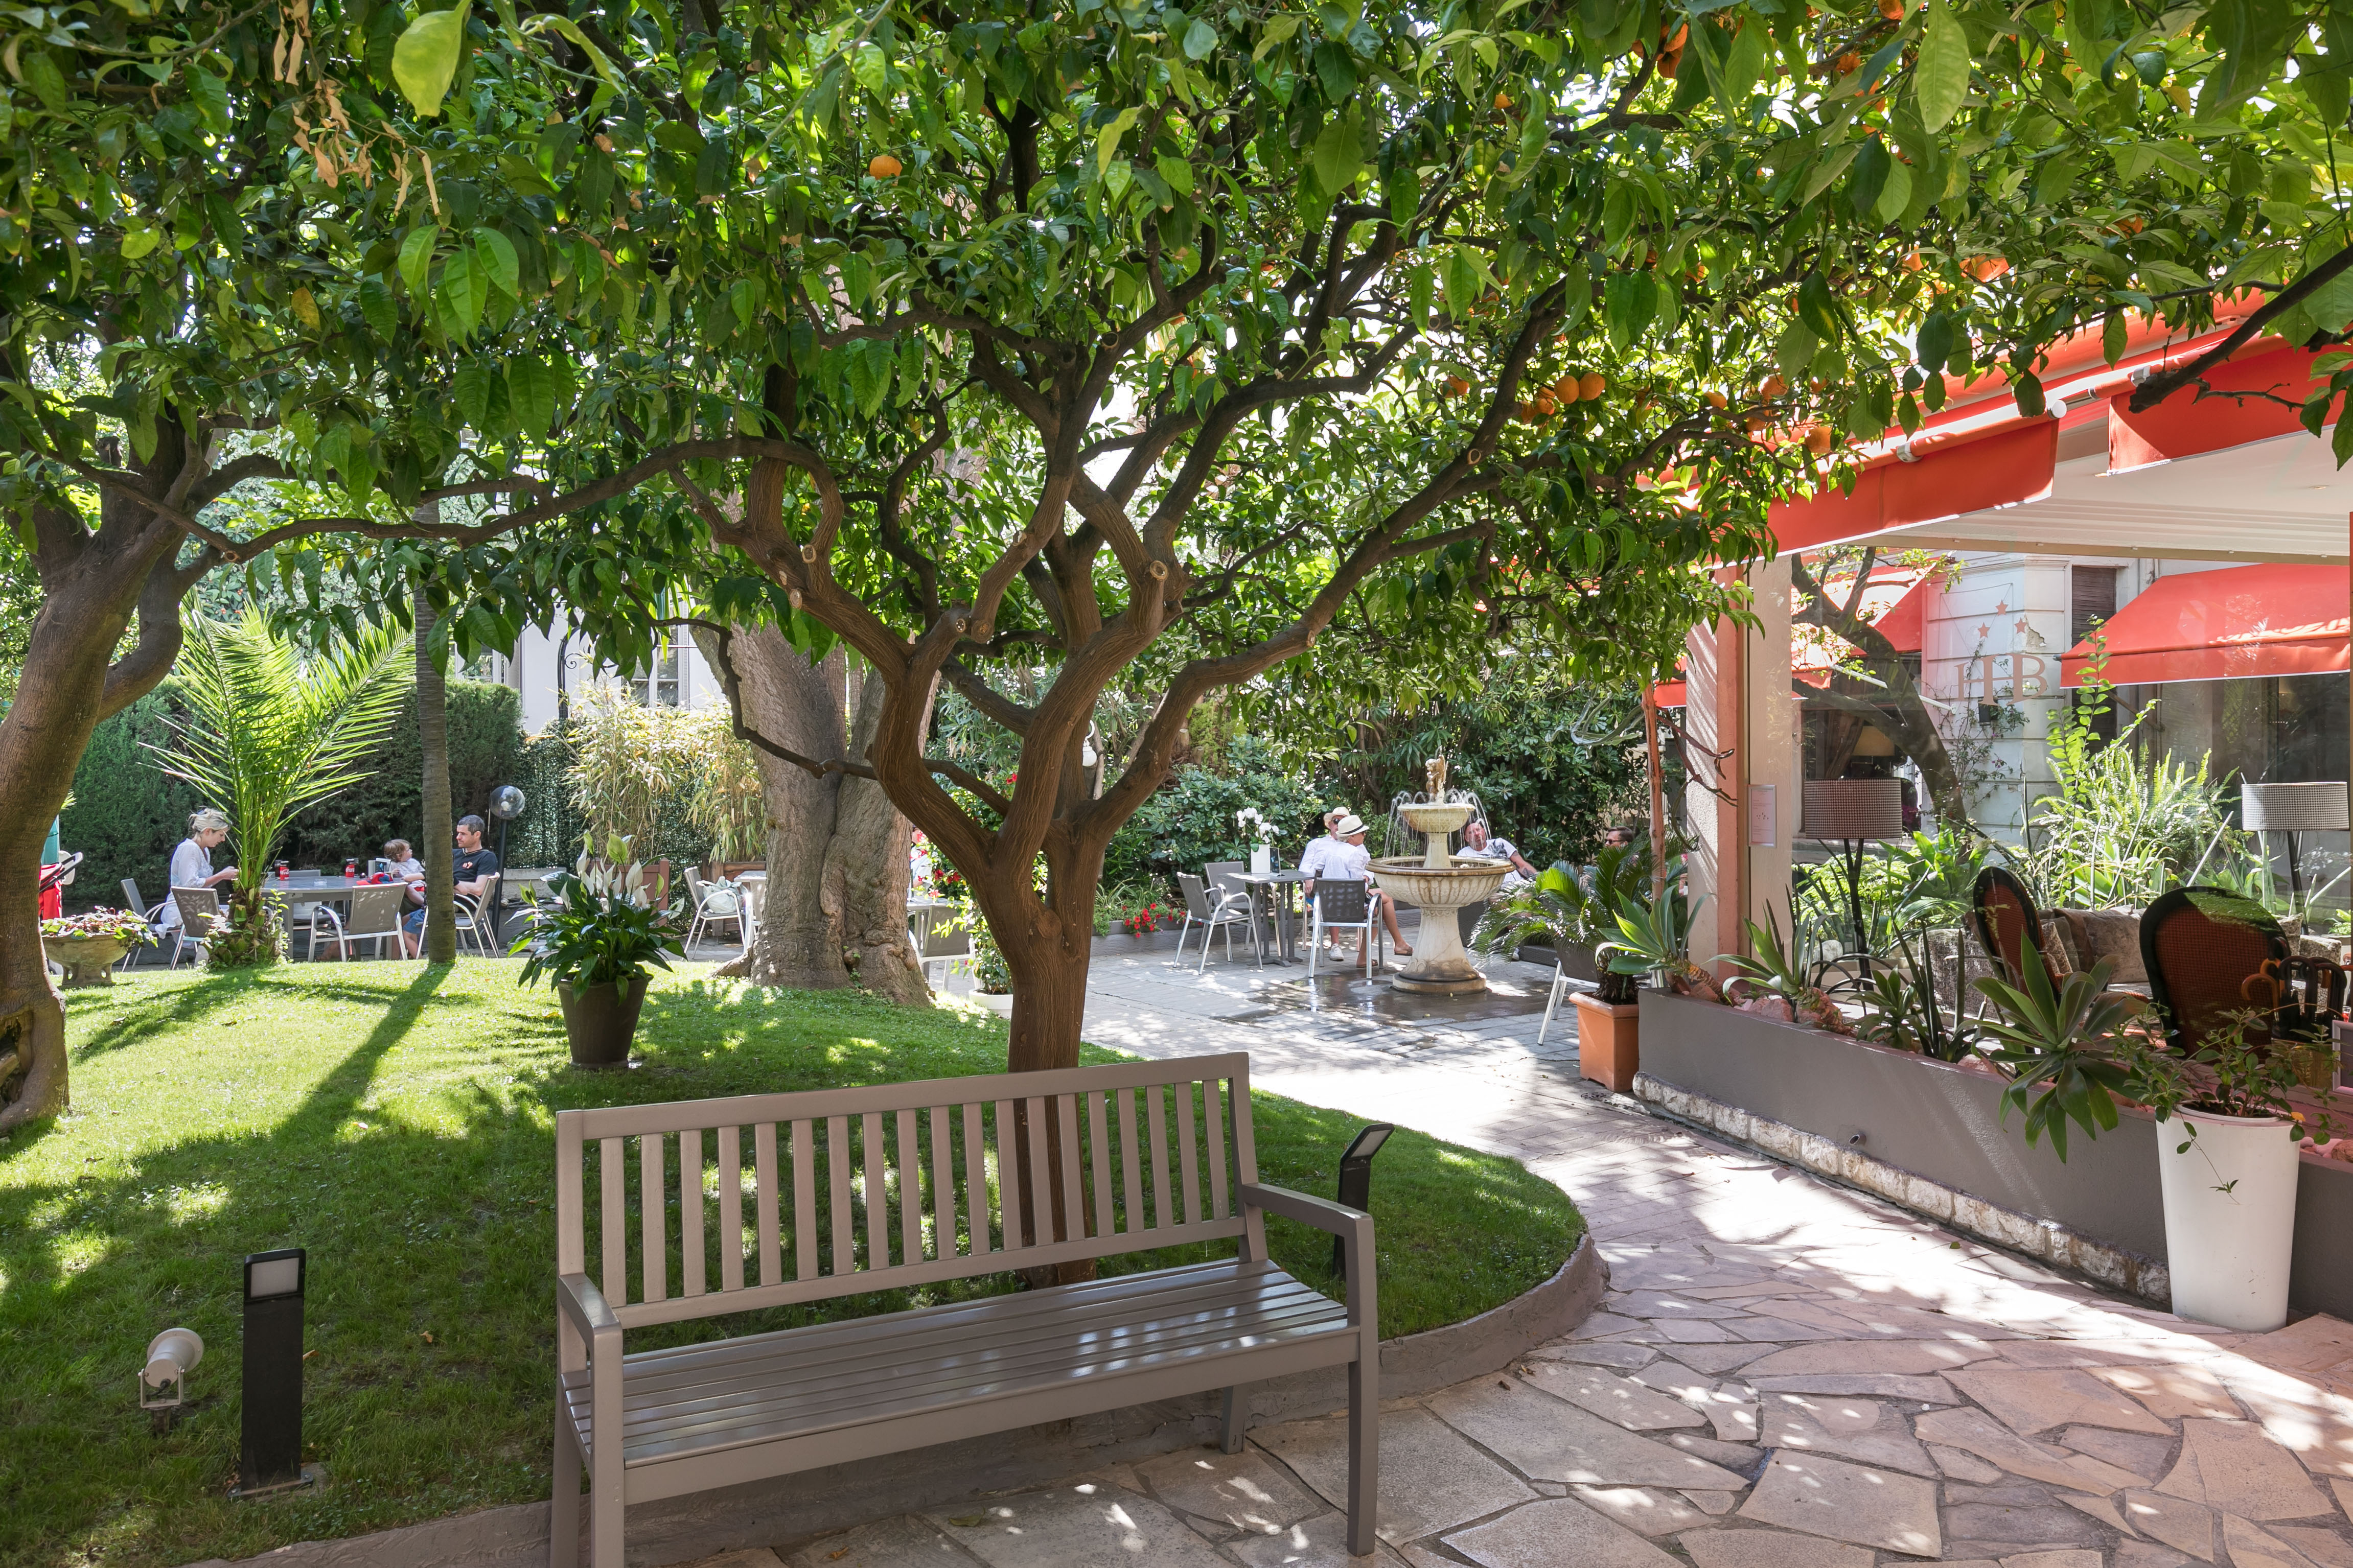 Garden of the Best Western Plus Hotel Brice Garden Nice